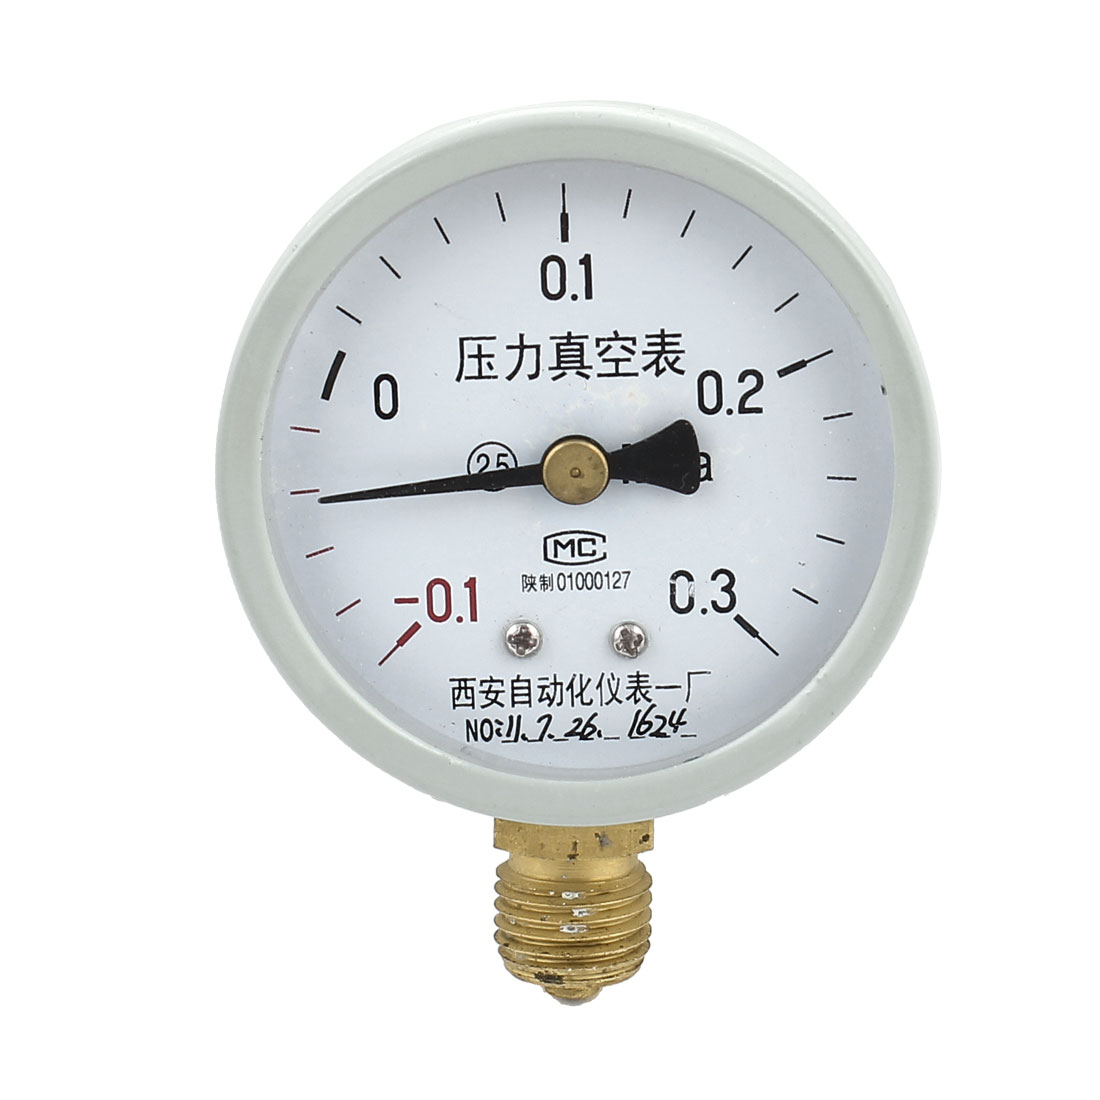 Round Dial Air Pneumatic Vacuum Pressure Meter Gauge -0.1MPa to 0.3MPa 60mm